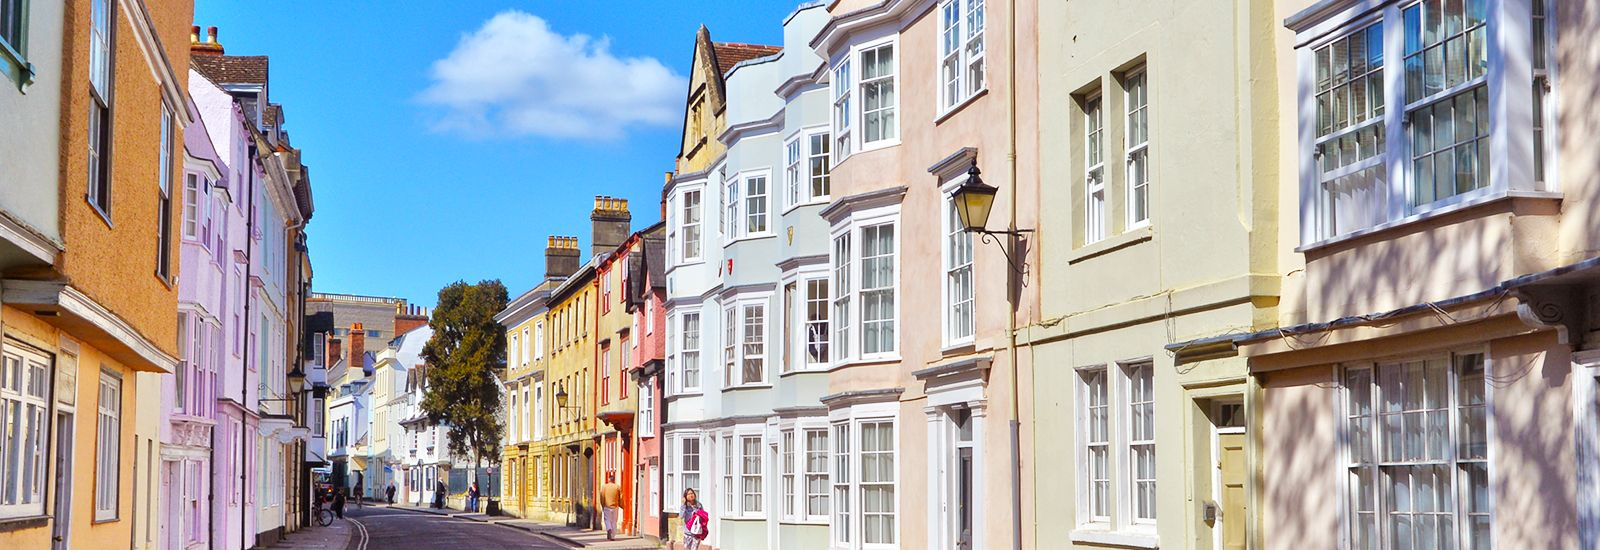 Colourful buildings on Holywell Street